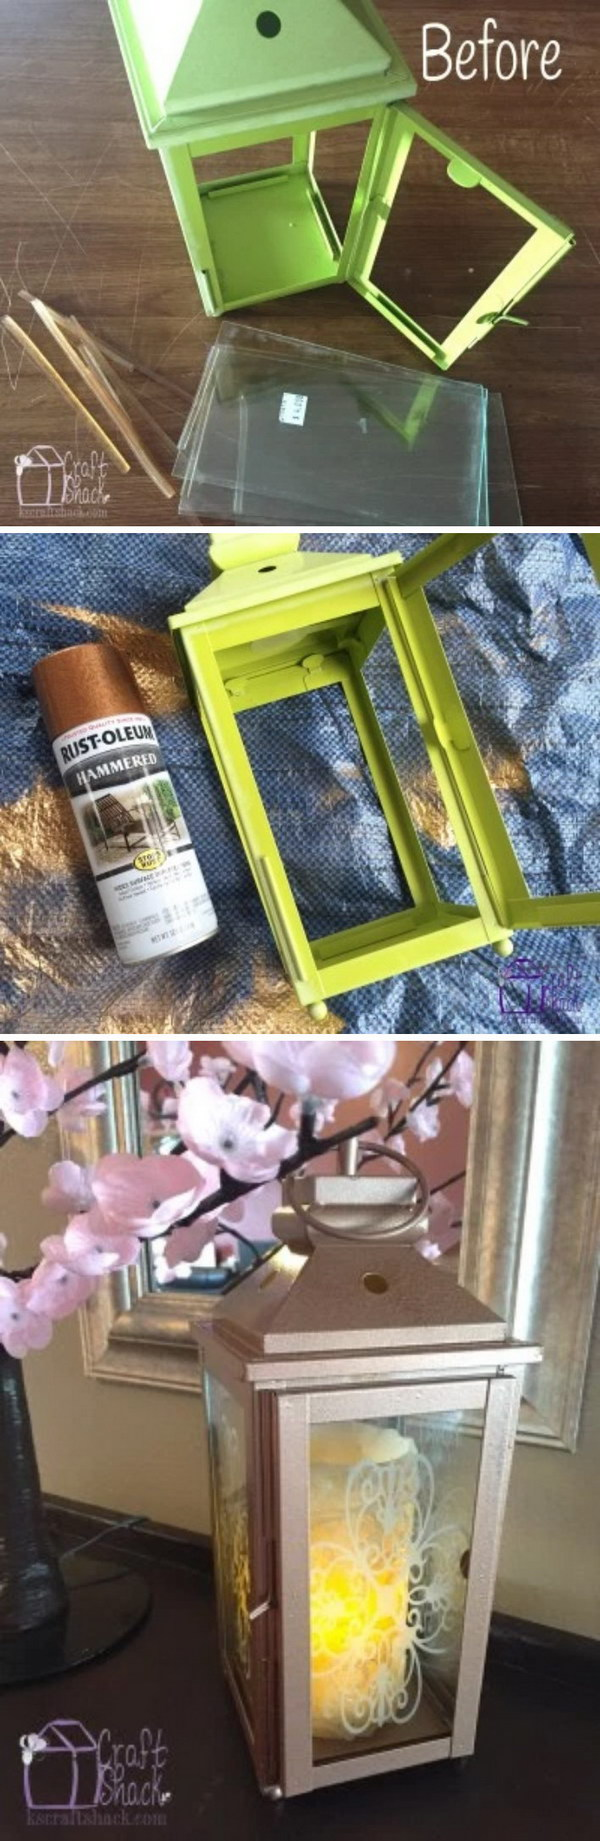 Thrift Store Lantern Makeover with Gold Spray.